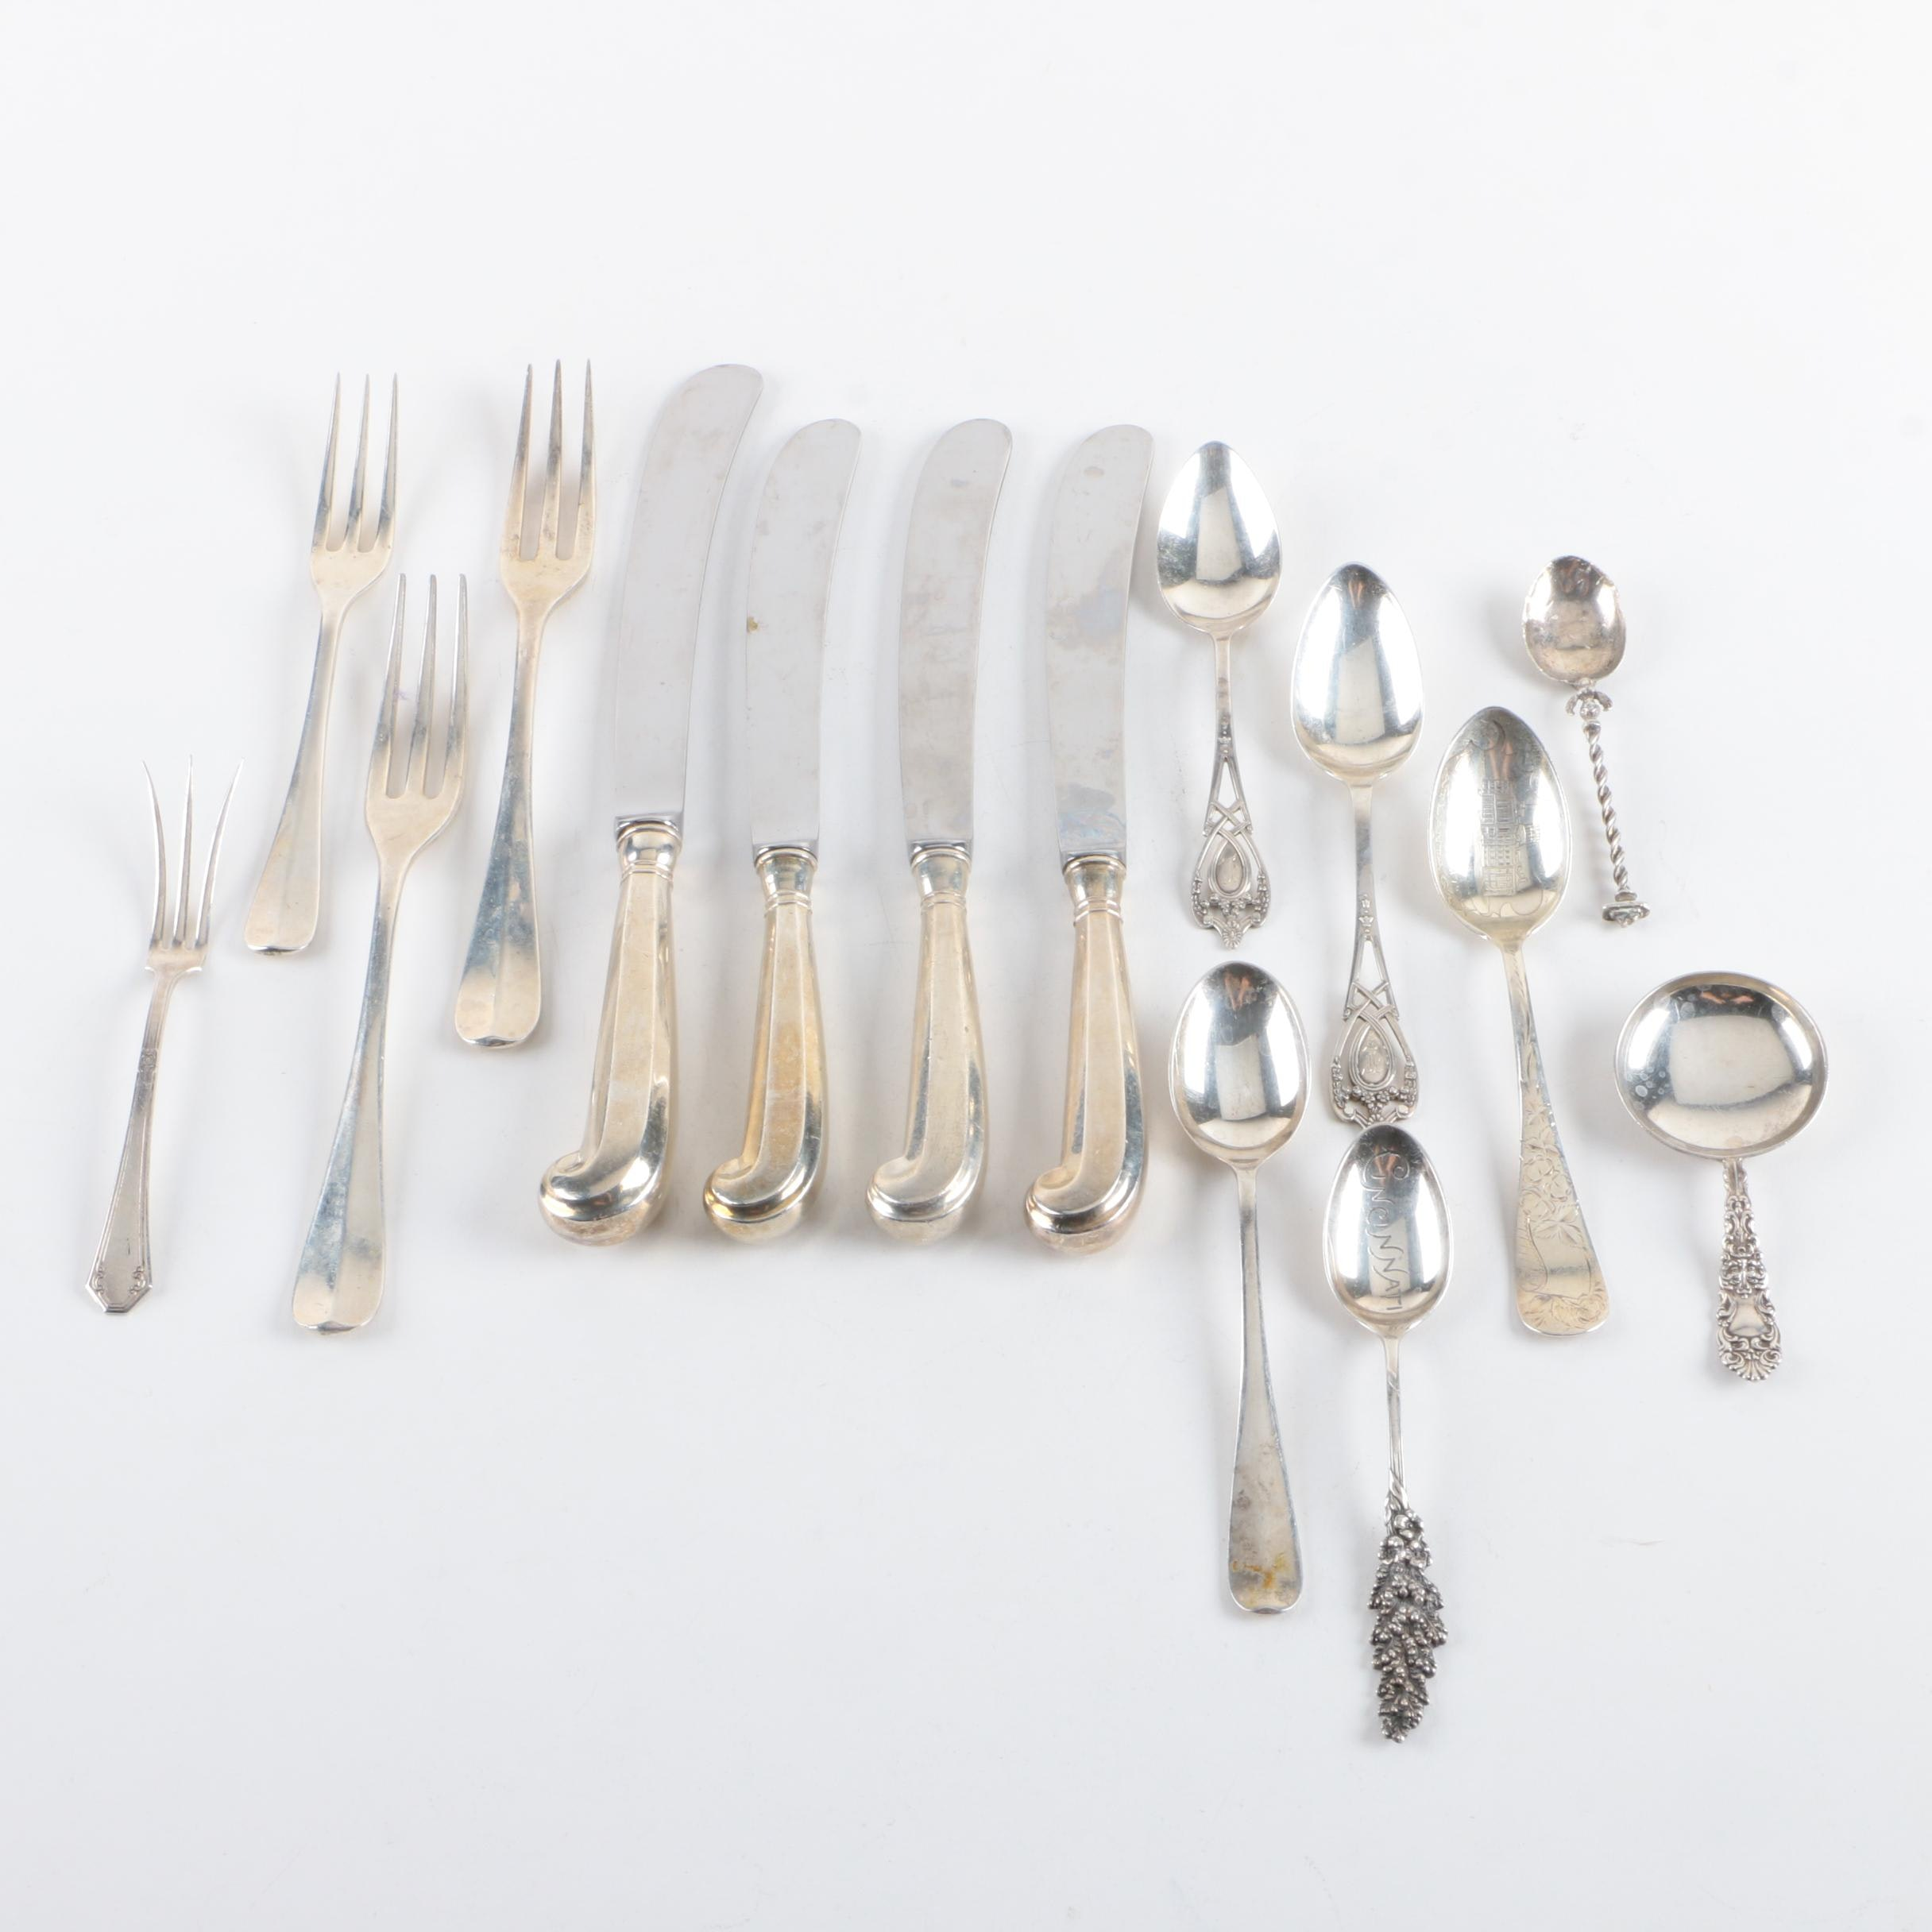 Dominick & Haff and Other Sterling Flatware with 800 Silver Spoon